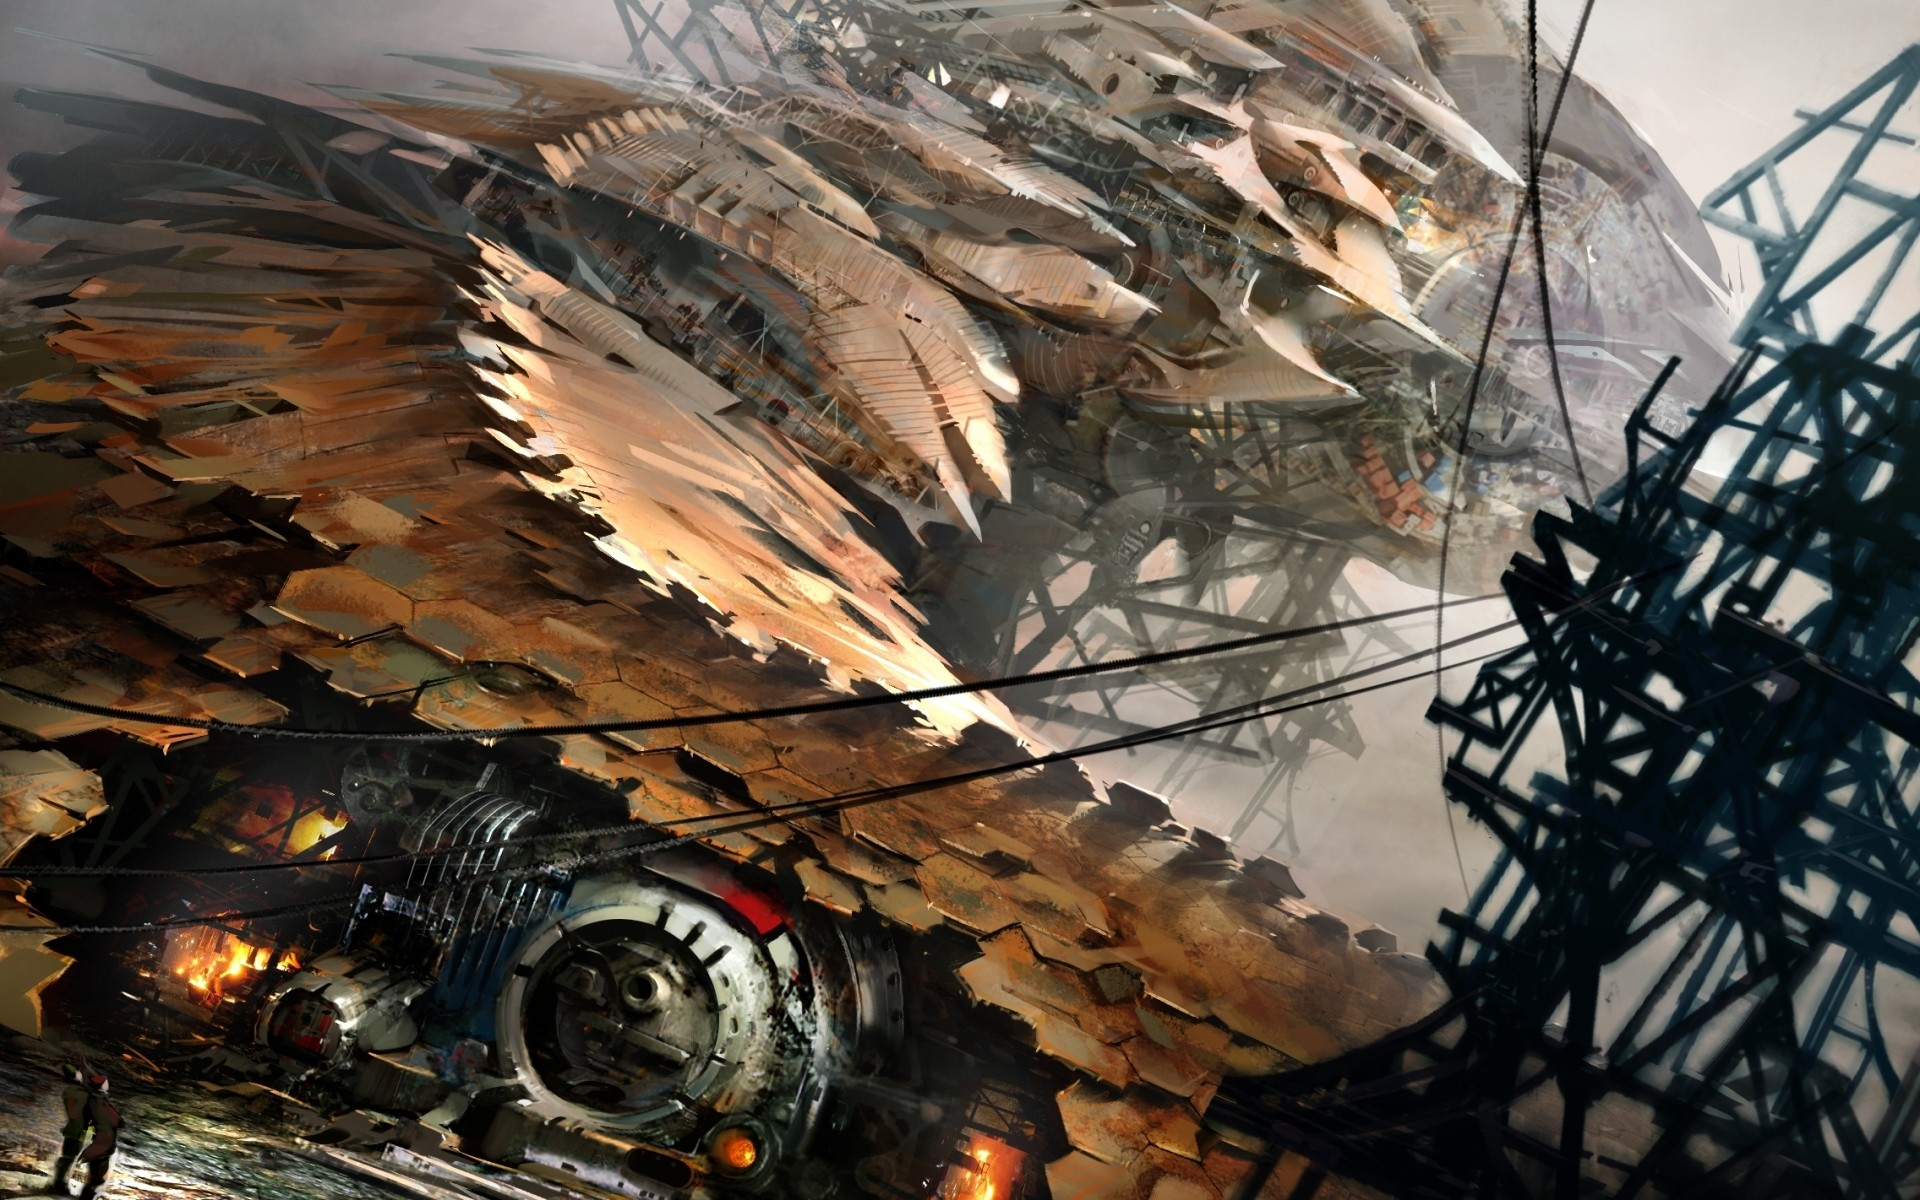 Tank Girl Wallpaper Android Steampunk Desktop Wallpaper 68 Images